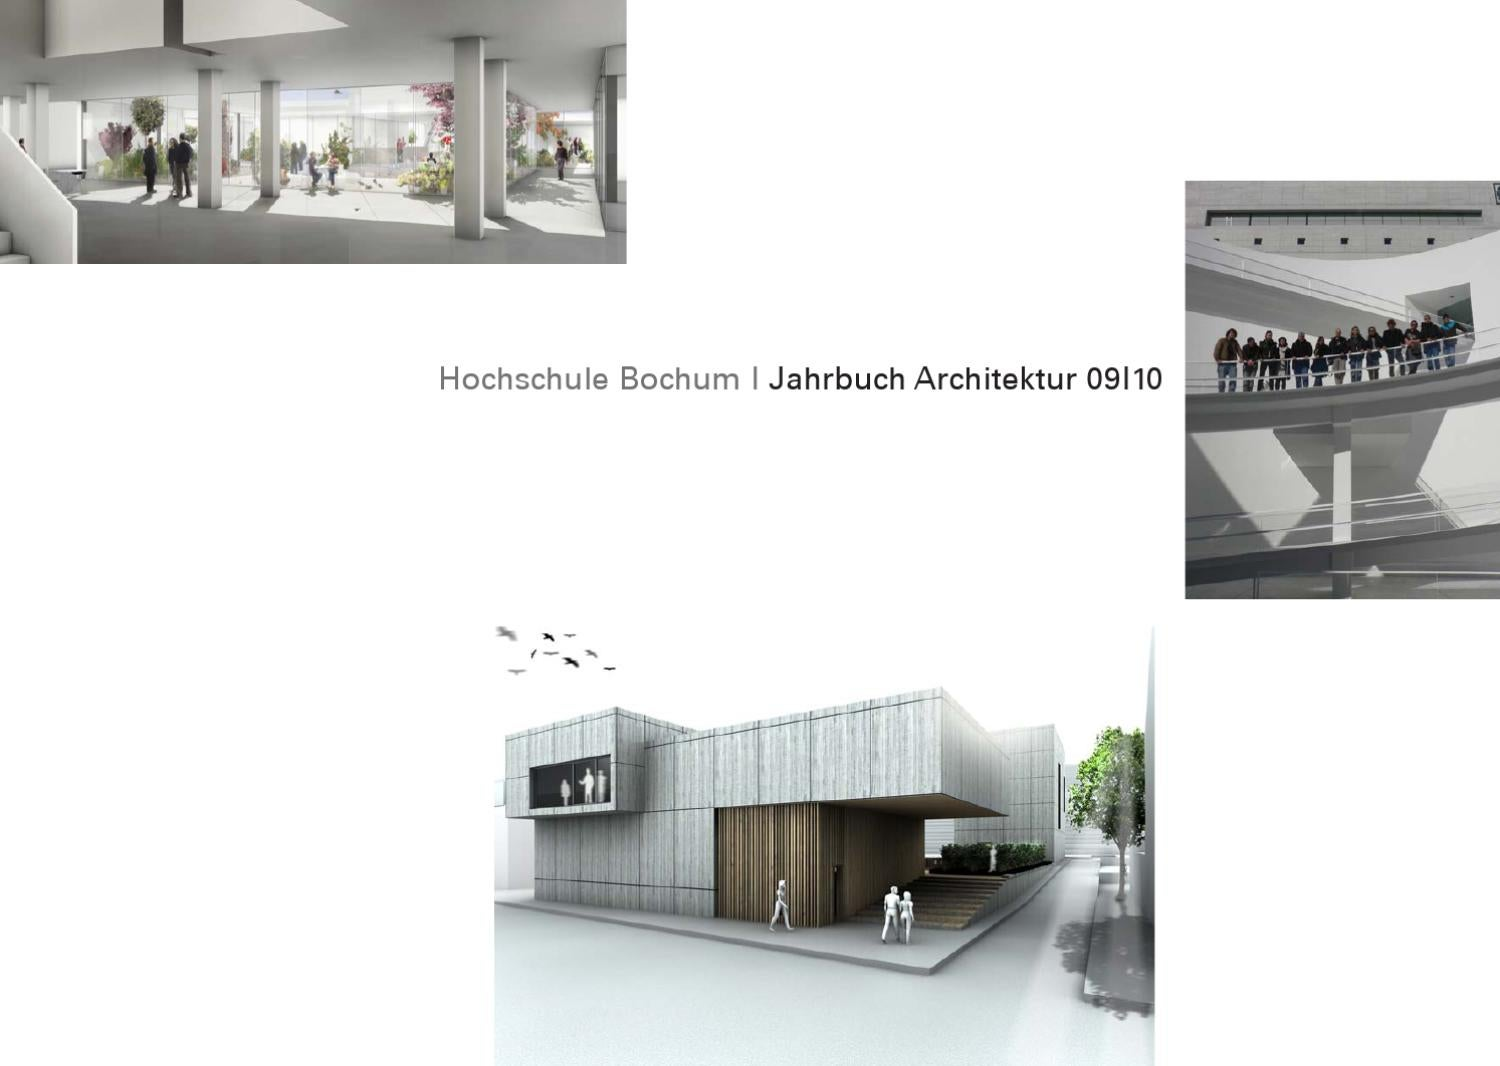 Bochum Architektur Jahrbuch Architektur Hs Bochum 2010 By Harald Gatermann Issuu